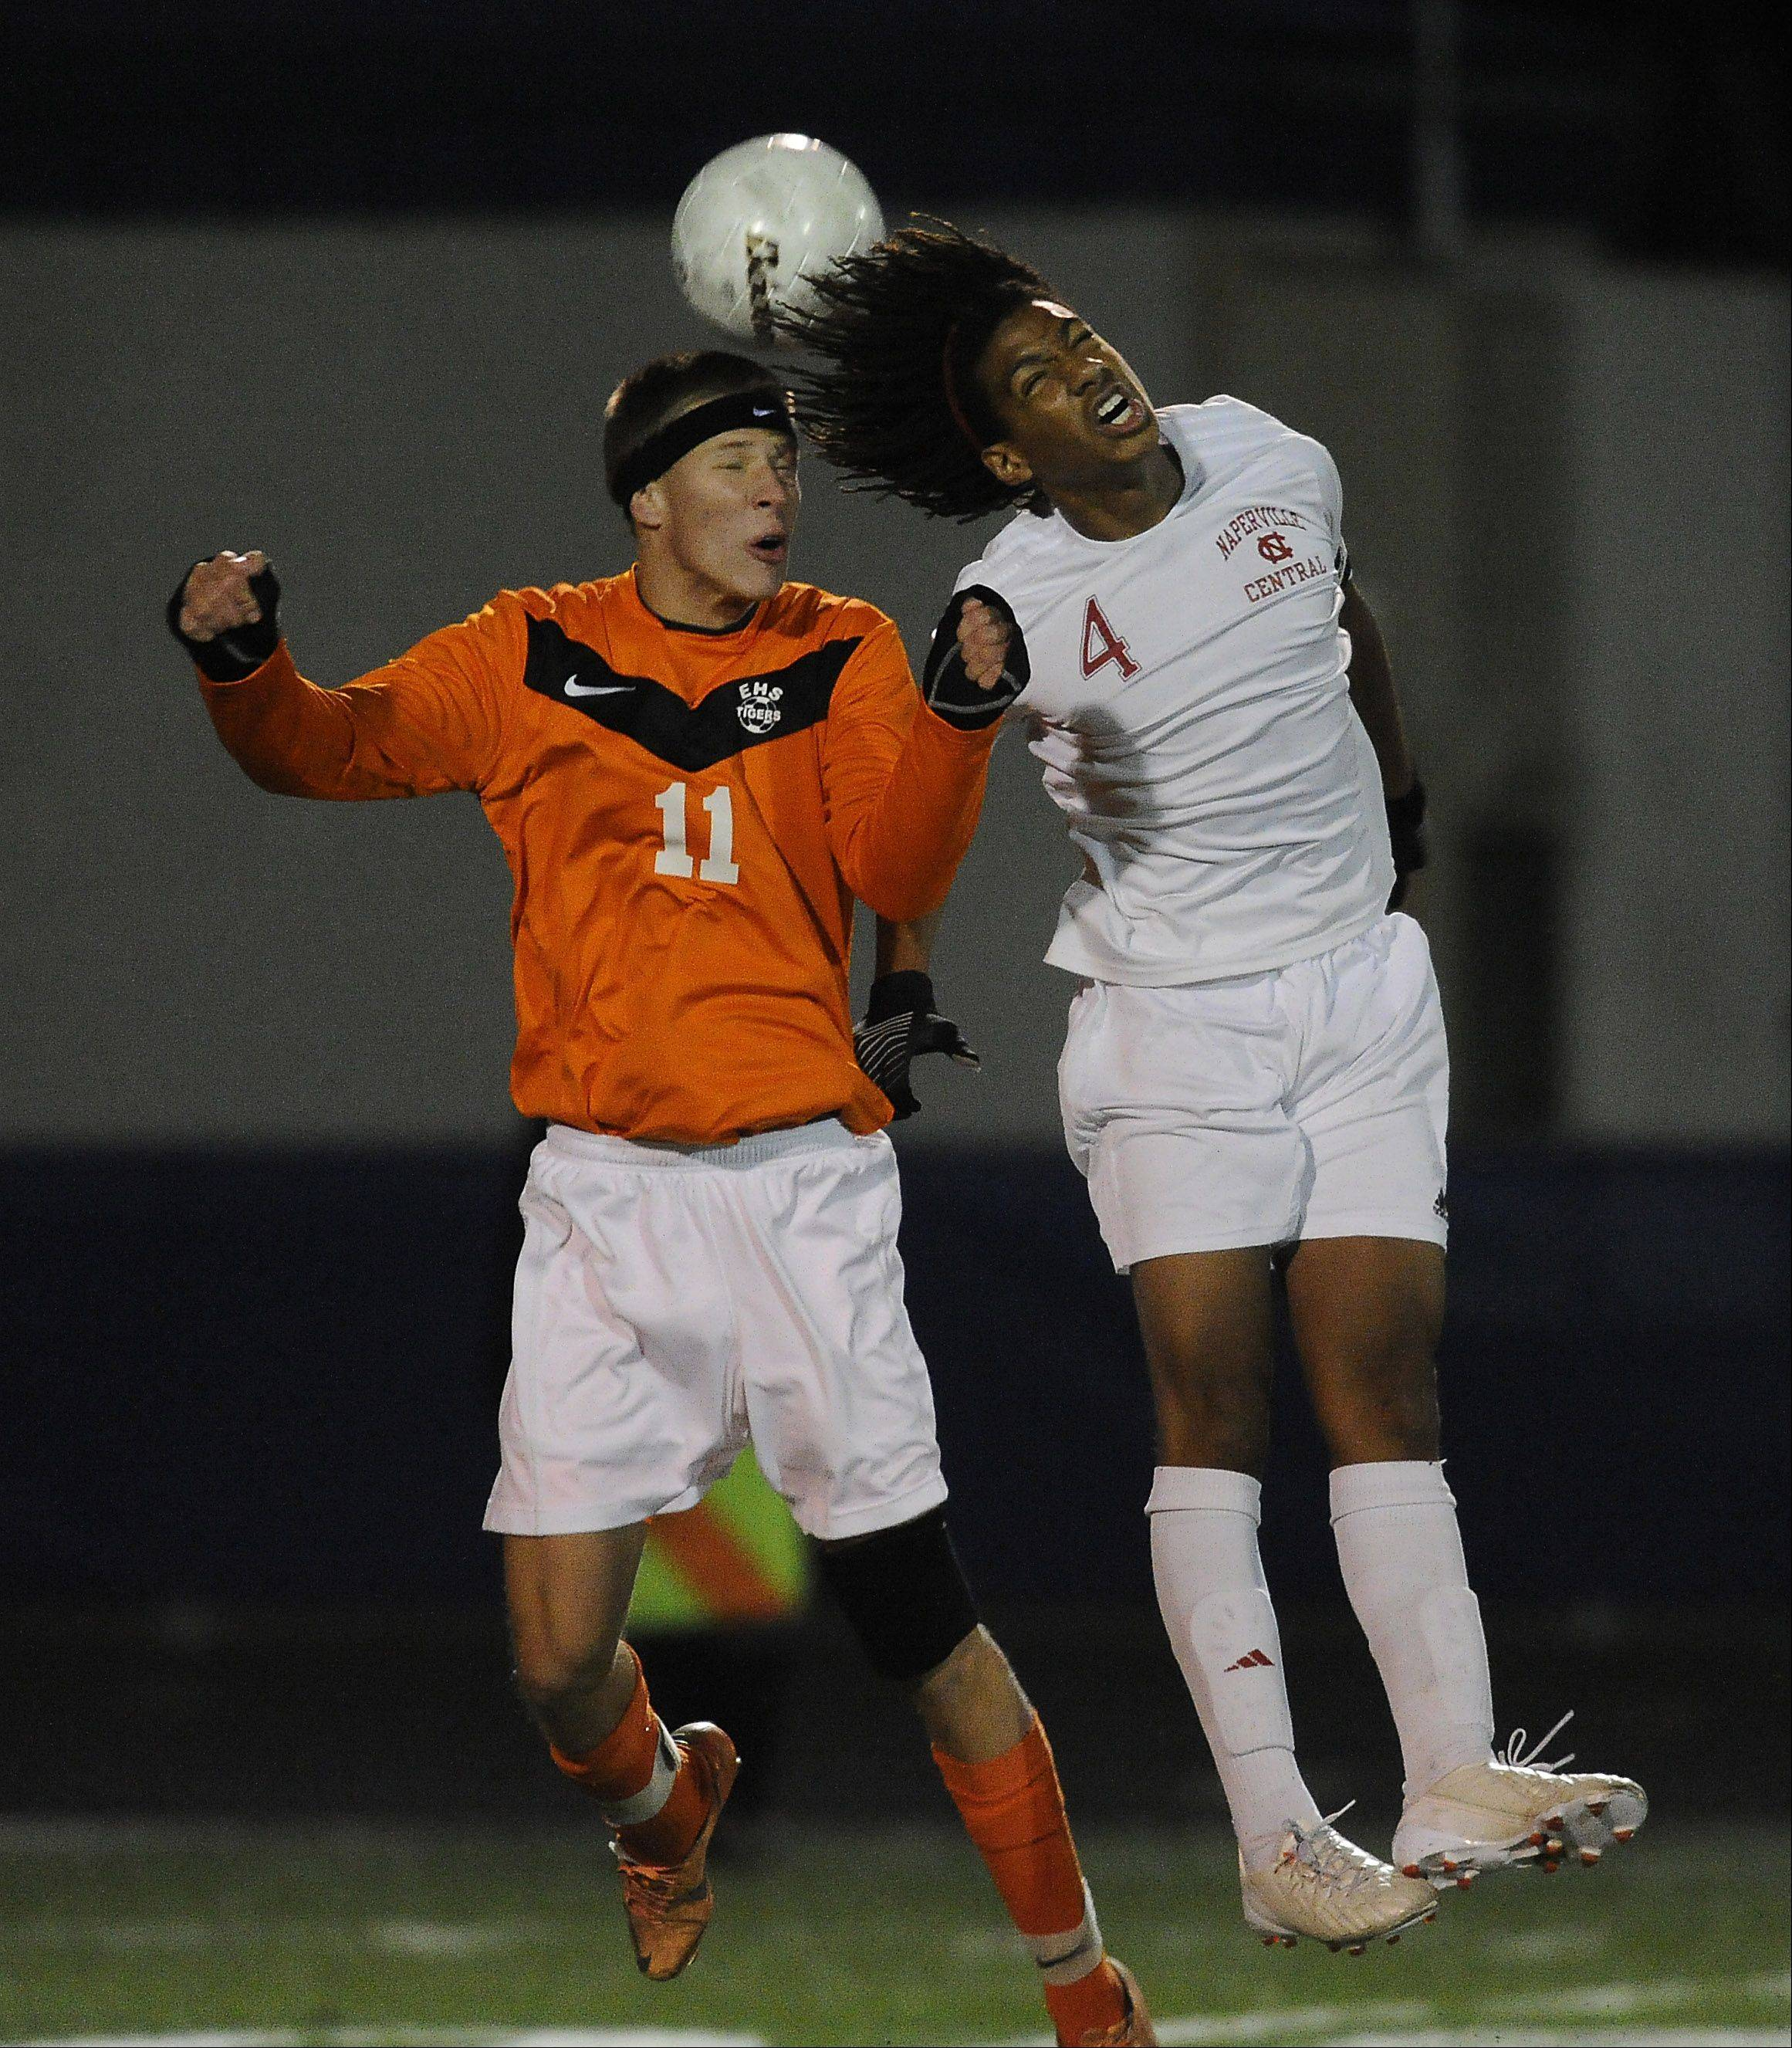 Naperville Central's Devon Amoo-Mensah goes up against Edwardsville's Justin Lowry for control of the ball in the first period of play in the Class 3A state semifinals at Hoffman Estates High School on Friday.